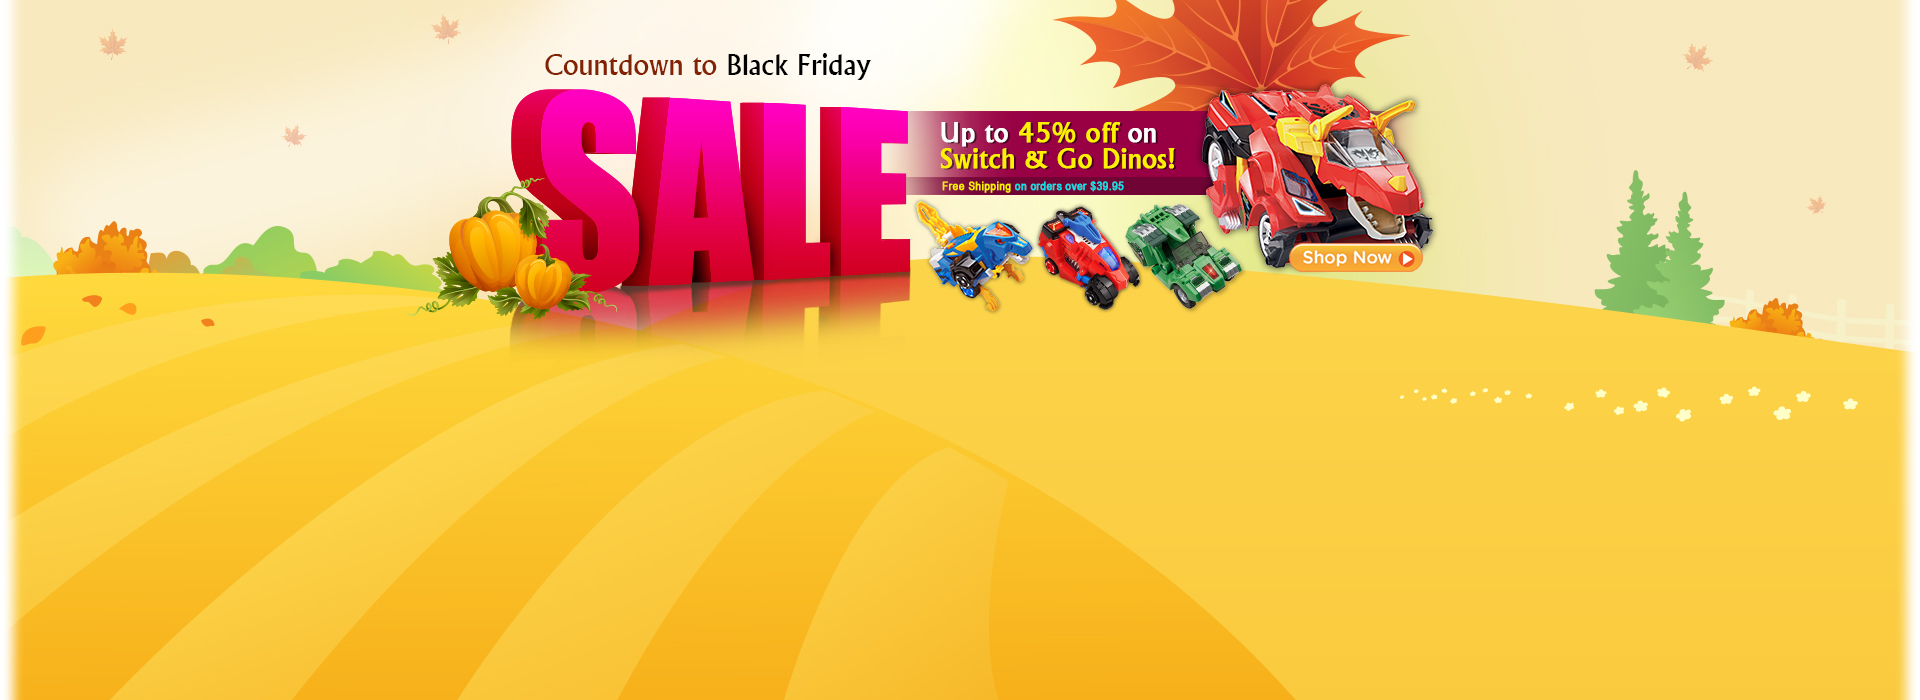 Countdown to Black Friday Sale - Up to 45% off on Switch & Go Dinos!